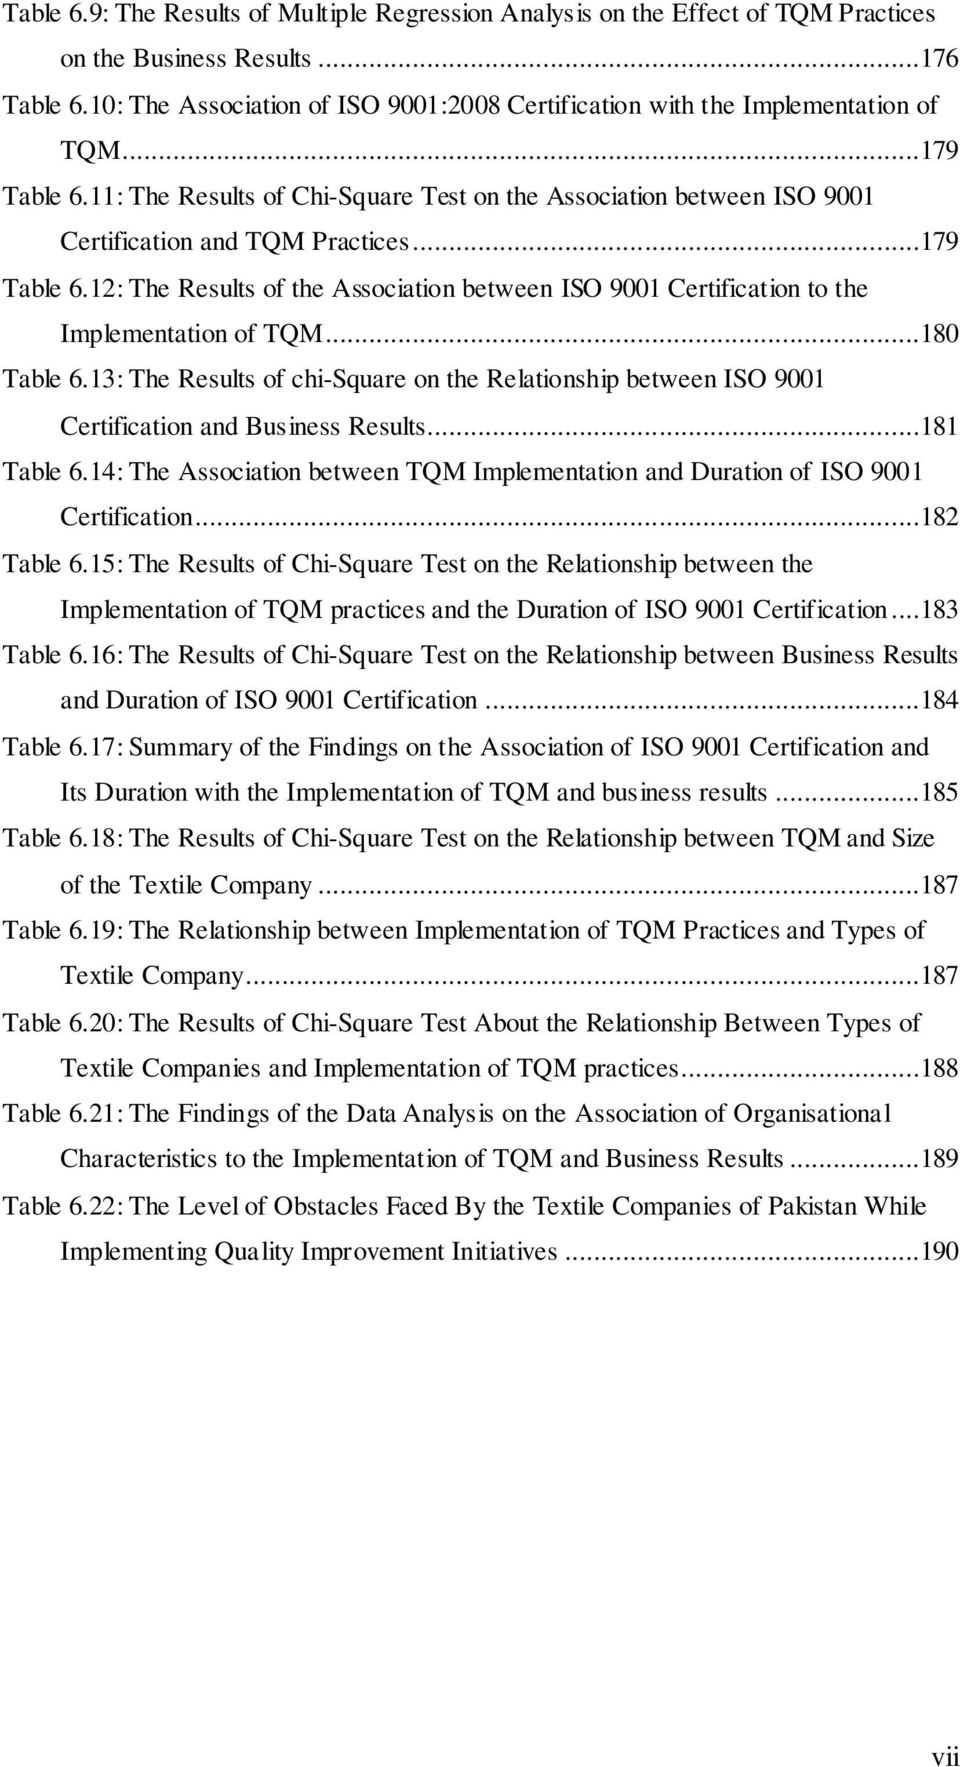 ..179 Table 6.12: The Results of the Association between ISO 9001 Certification to the Implementation of TQM...180 Table 6.